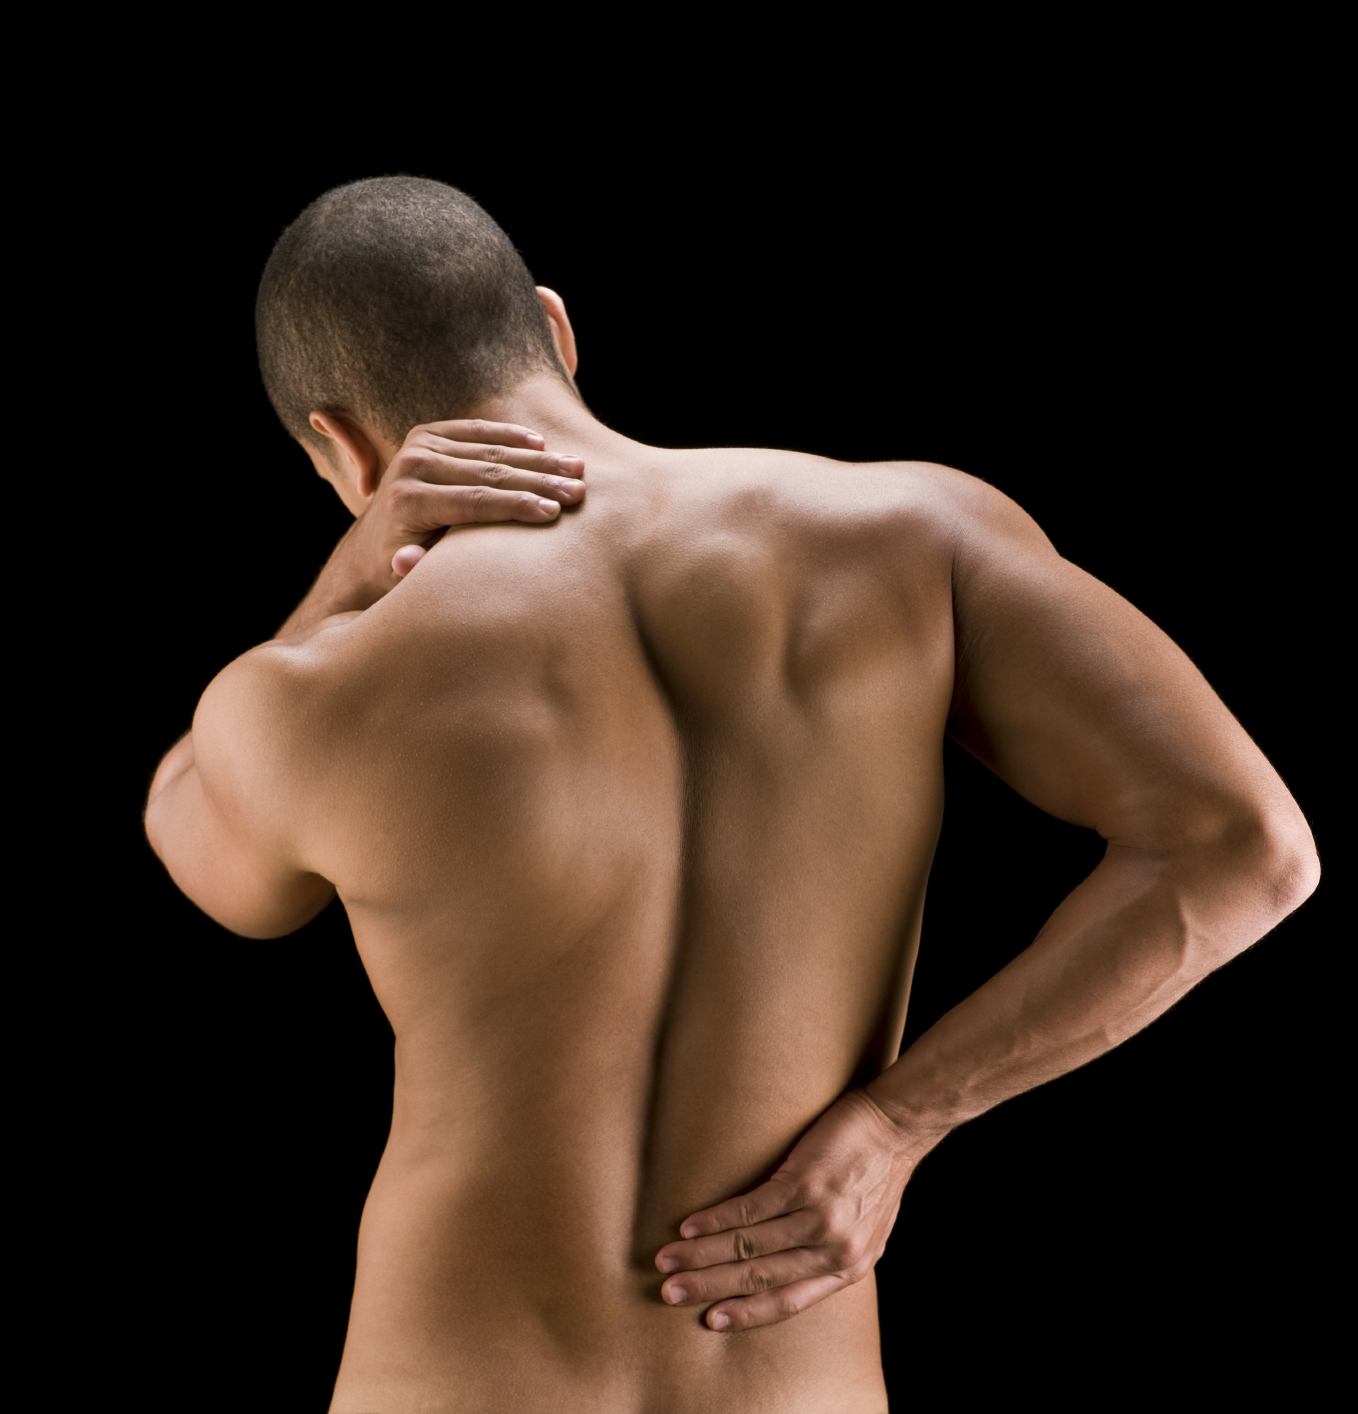 How To Get Out Of Bed With Back Spasms